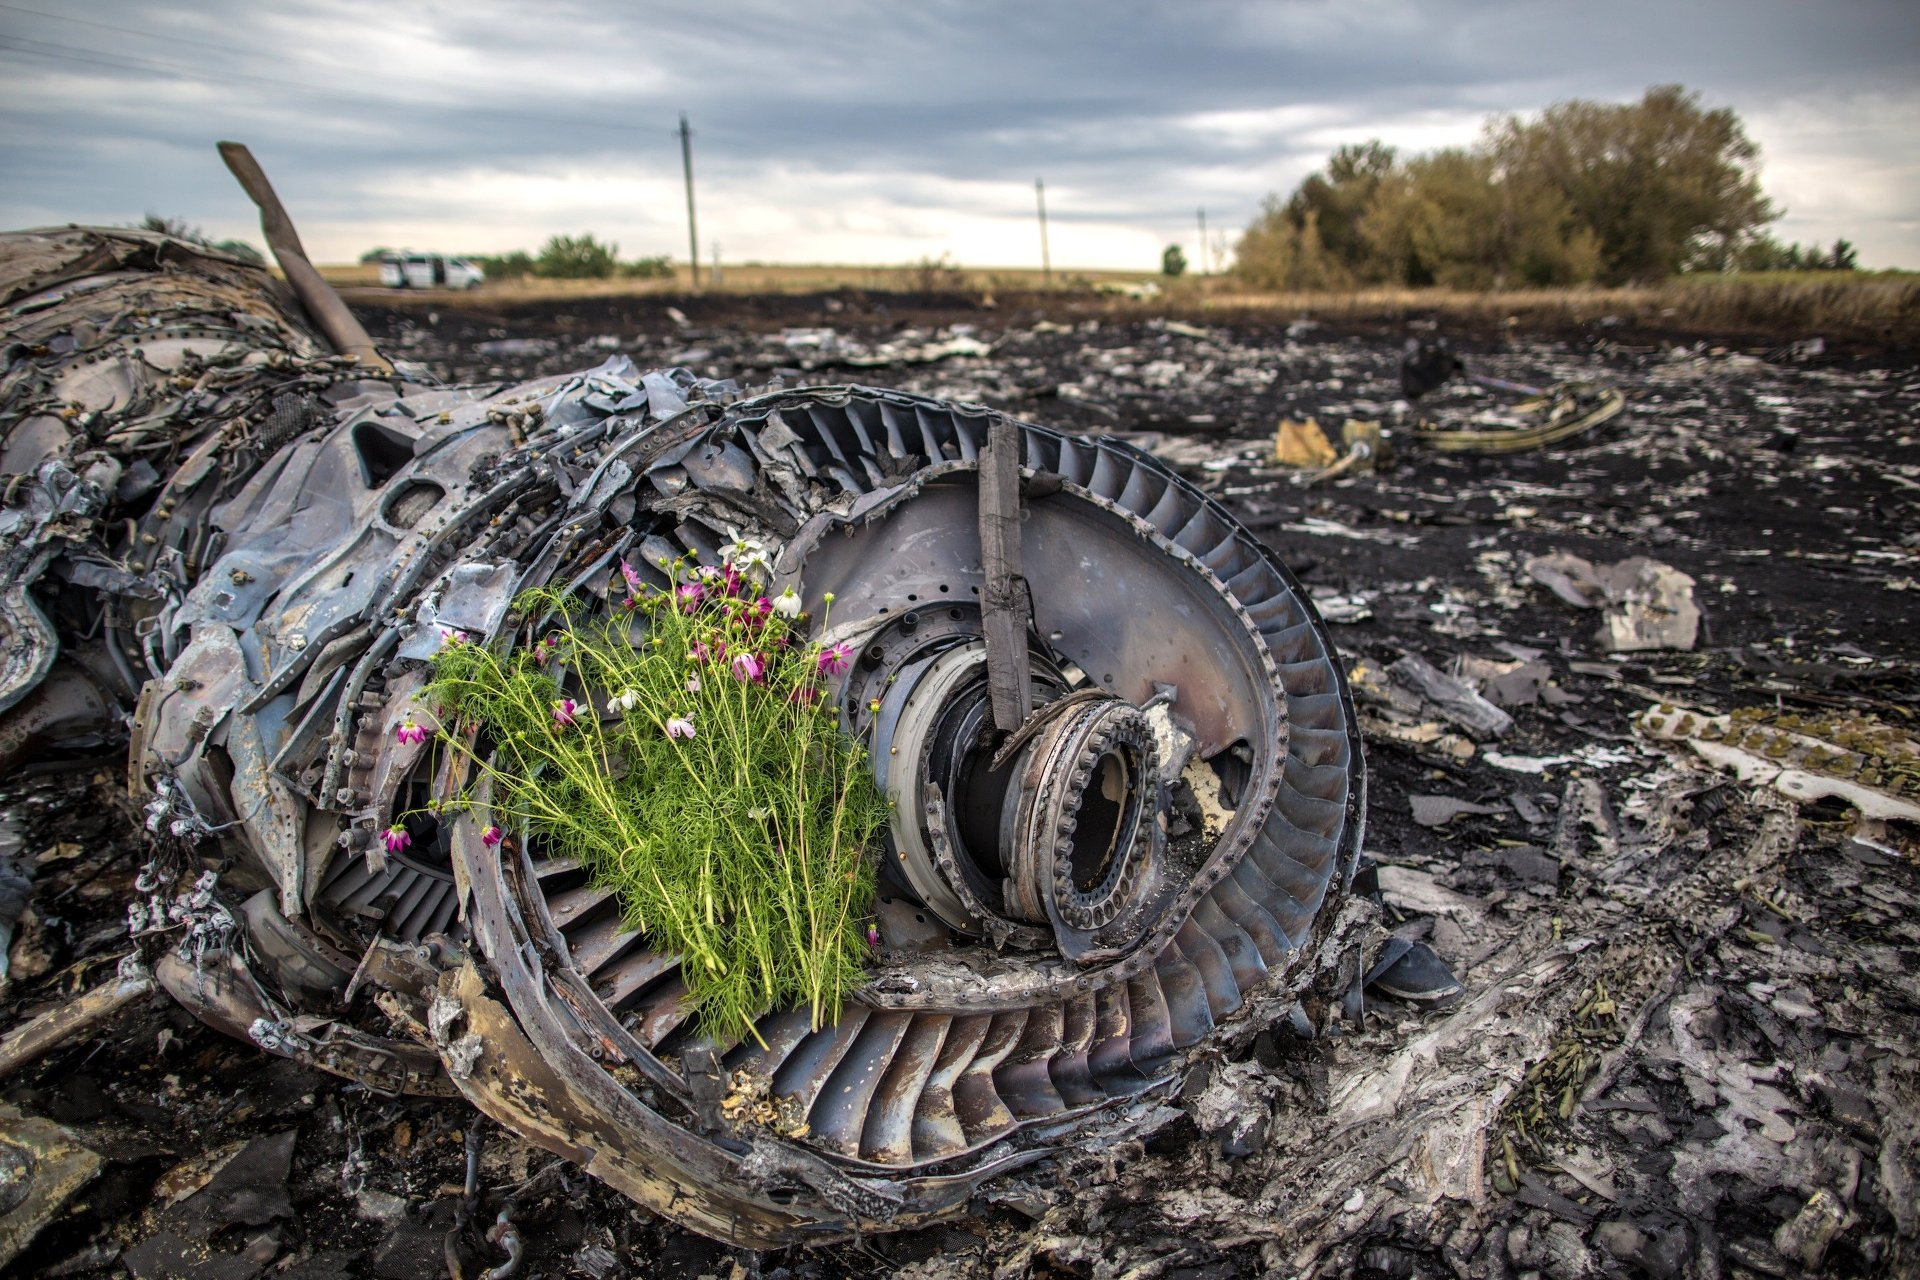 MH17 hearings to resume on march 23